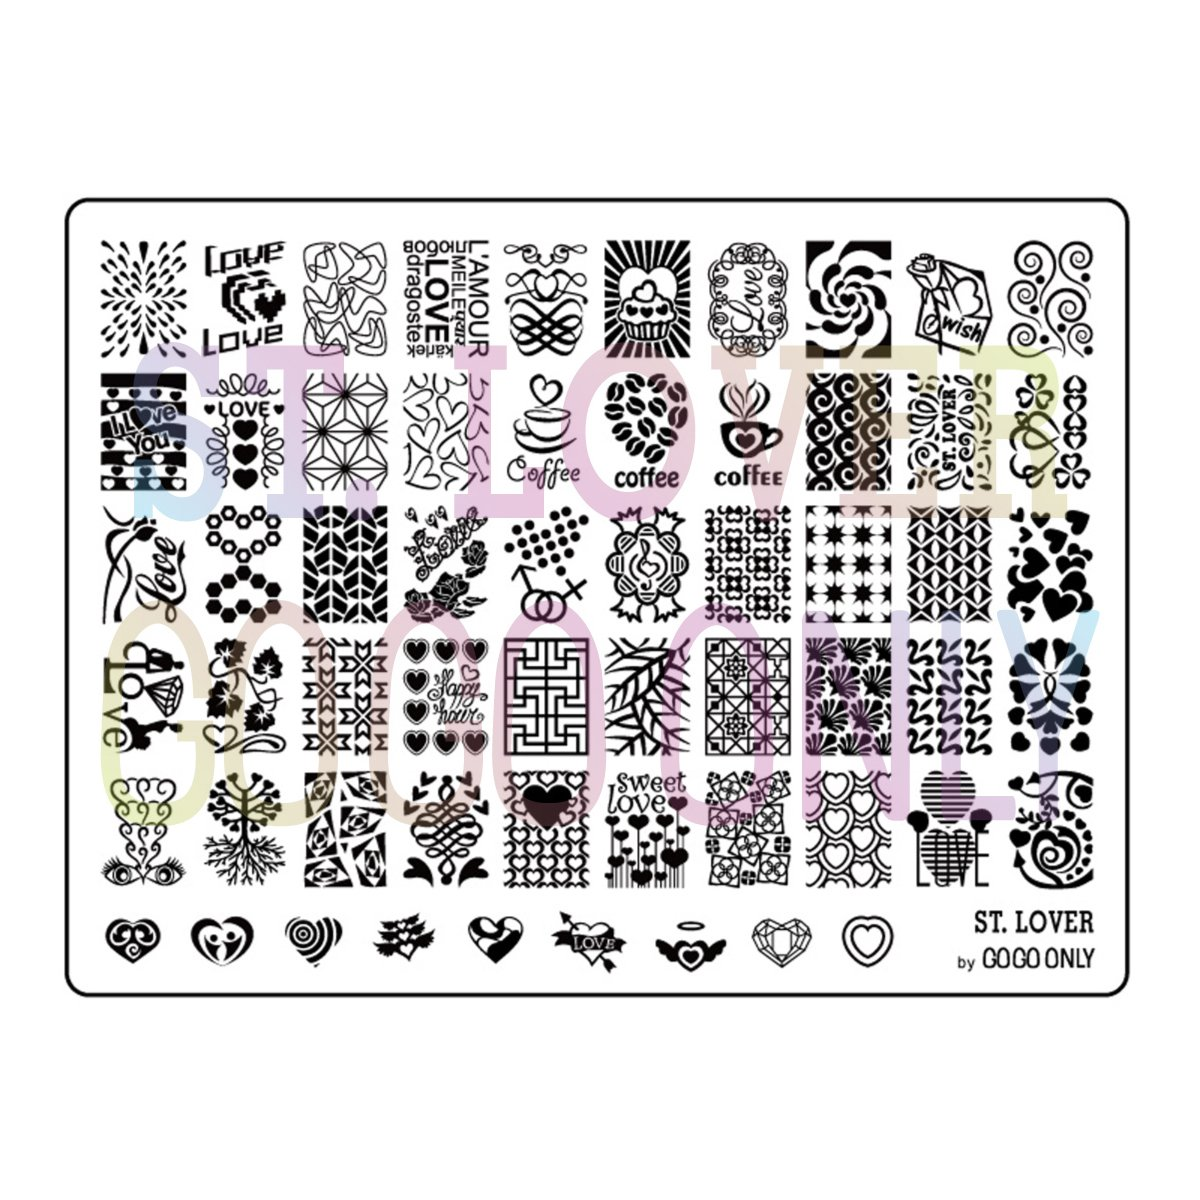 Gogoonly Nail Art Stamp Plate Collection St. Lover - Huge Size Stamping Image Plates Manicure Nail Designs DIY-BH000482